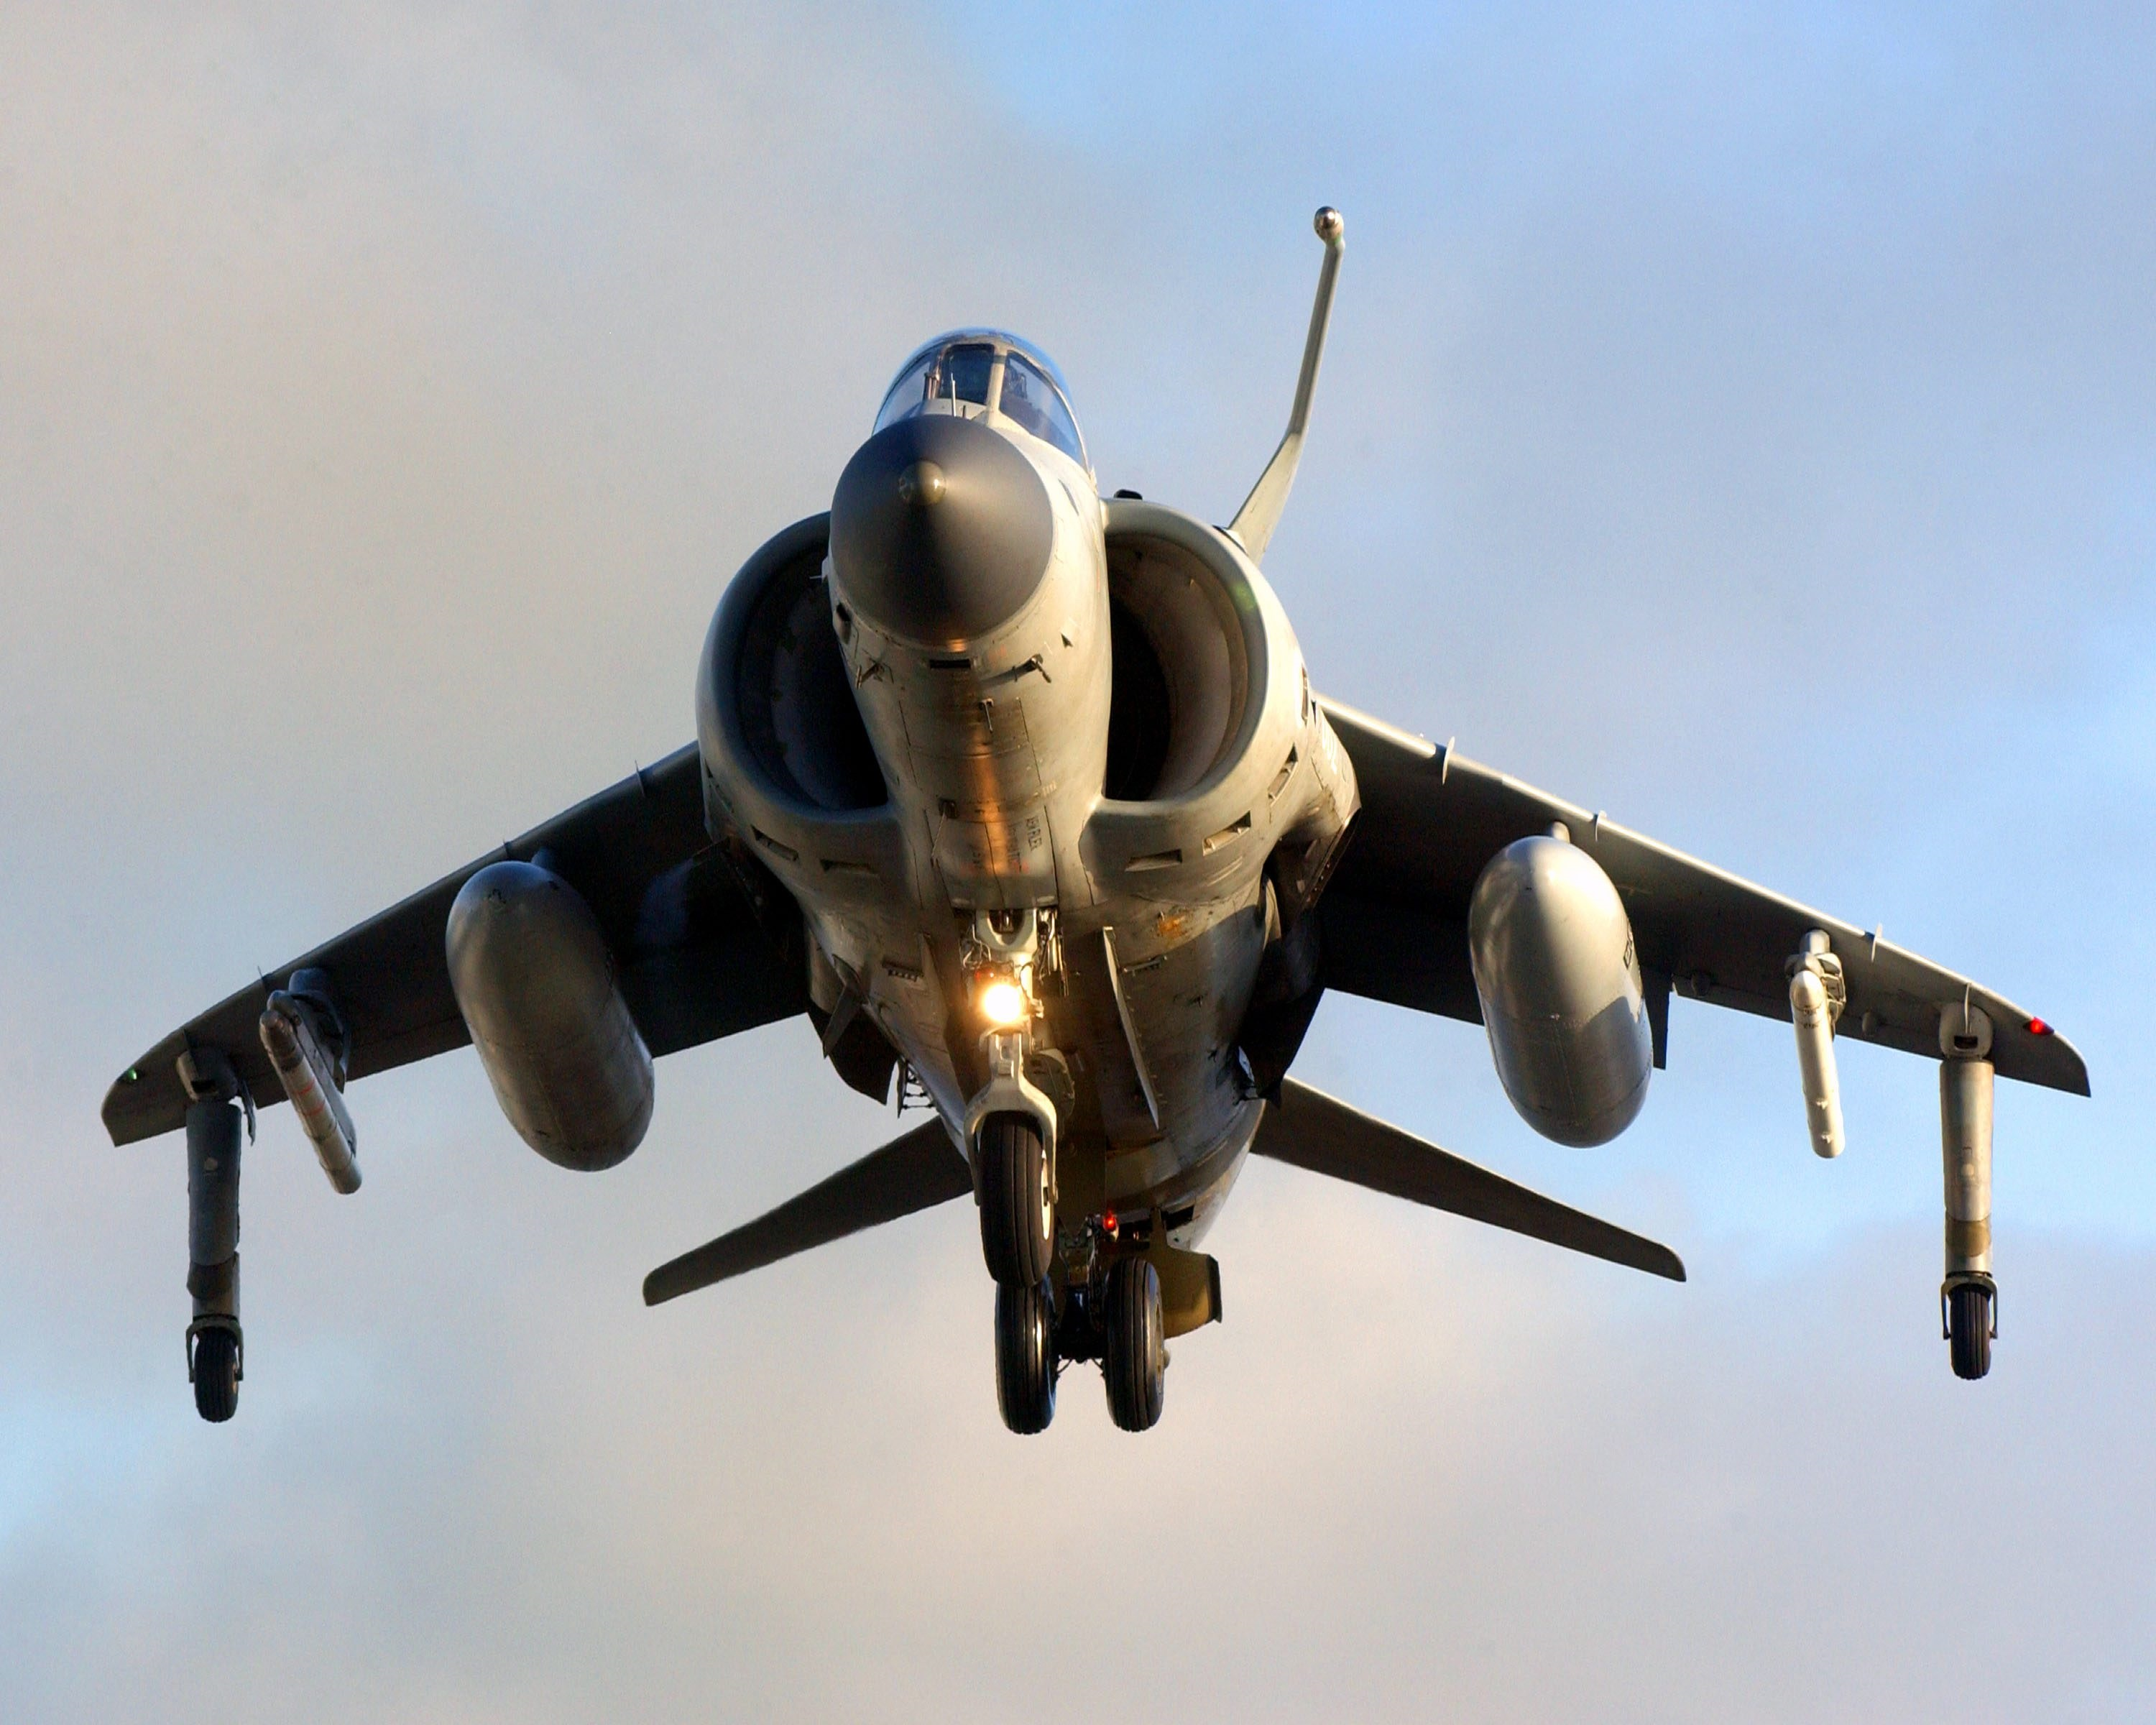 The Crazy Video of What Happened When a Harrier Fighter Jet Crash